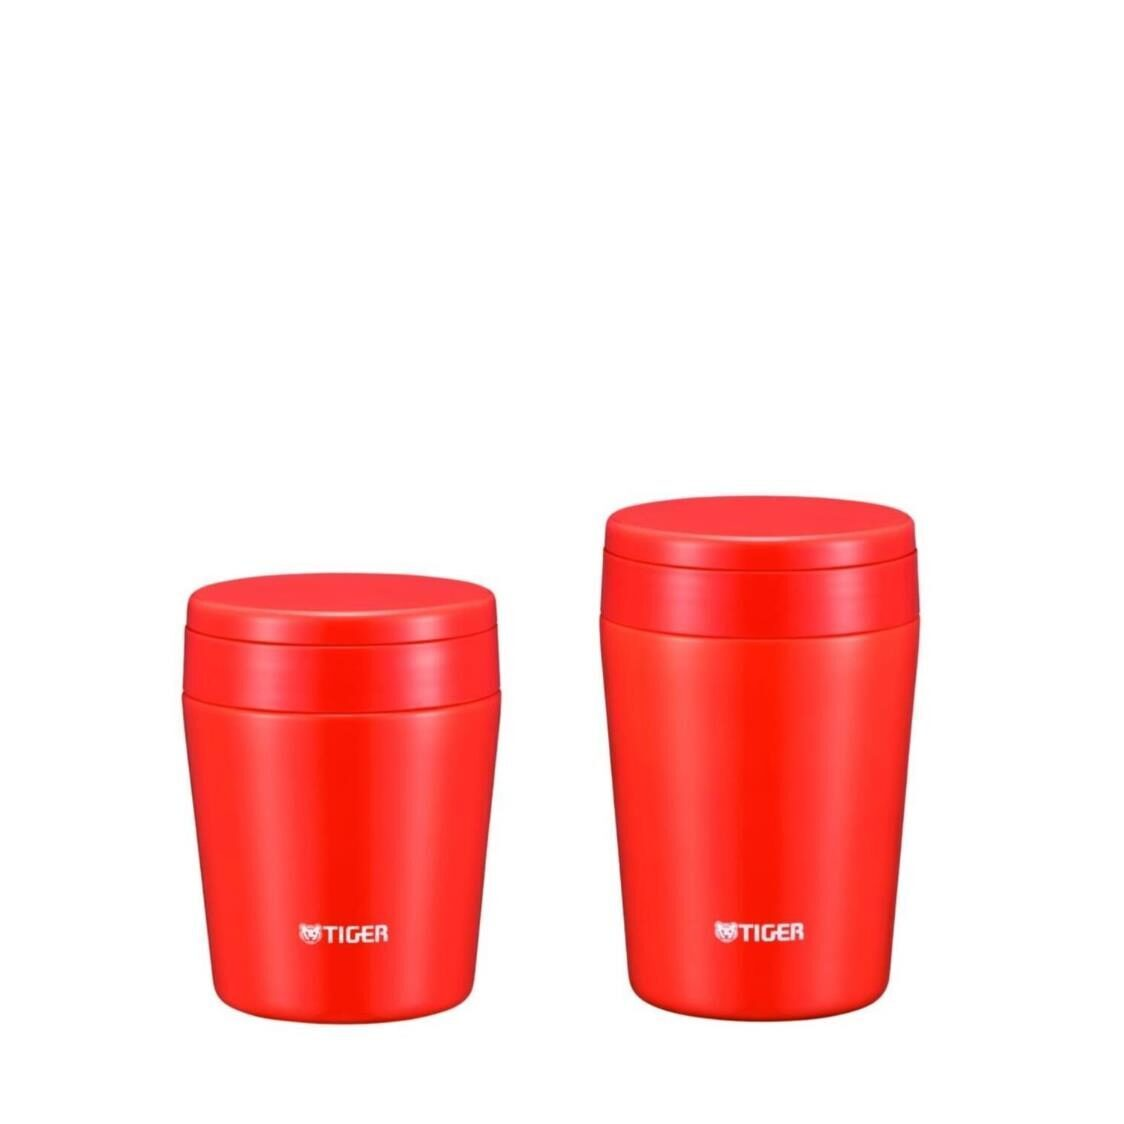 Tiger 300ml380ml Double Stainless Steel Soup Cup Set - Red